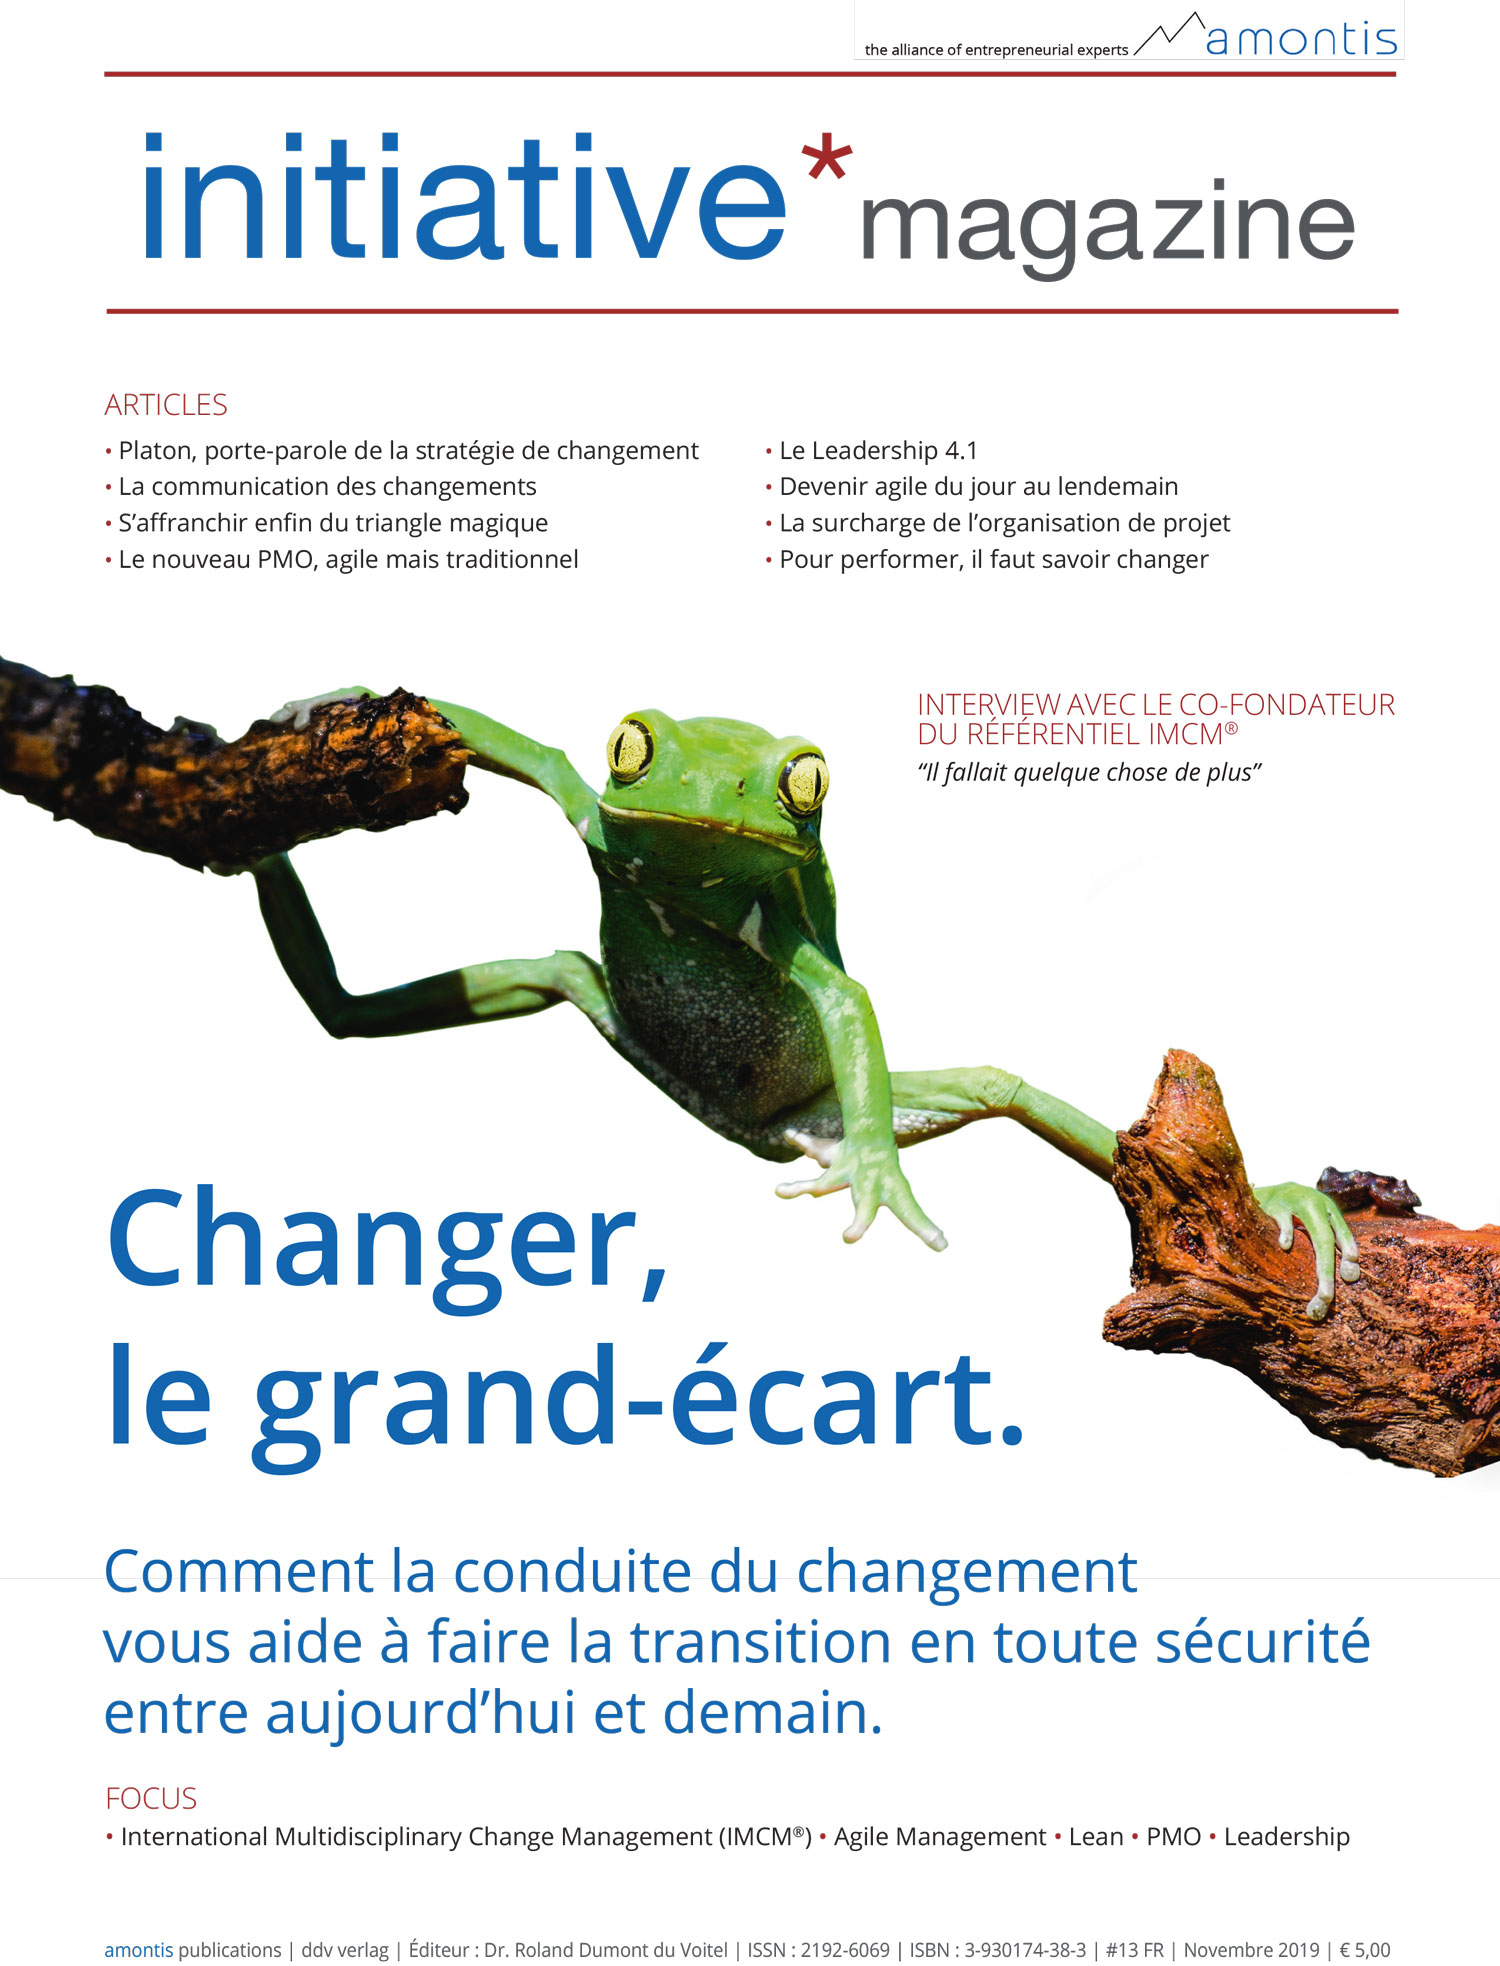 """Changer, le grand-écart"" - initiative*magazine #13 (Version papier)"